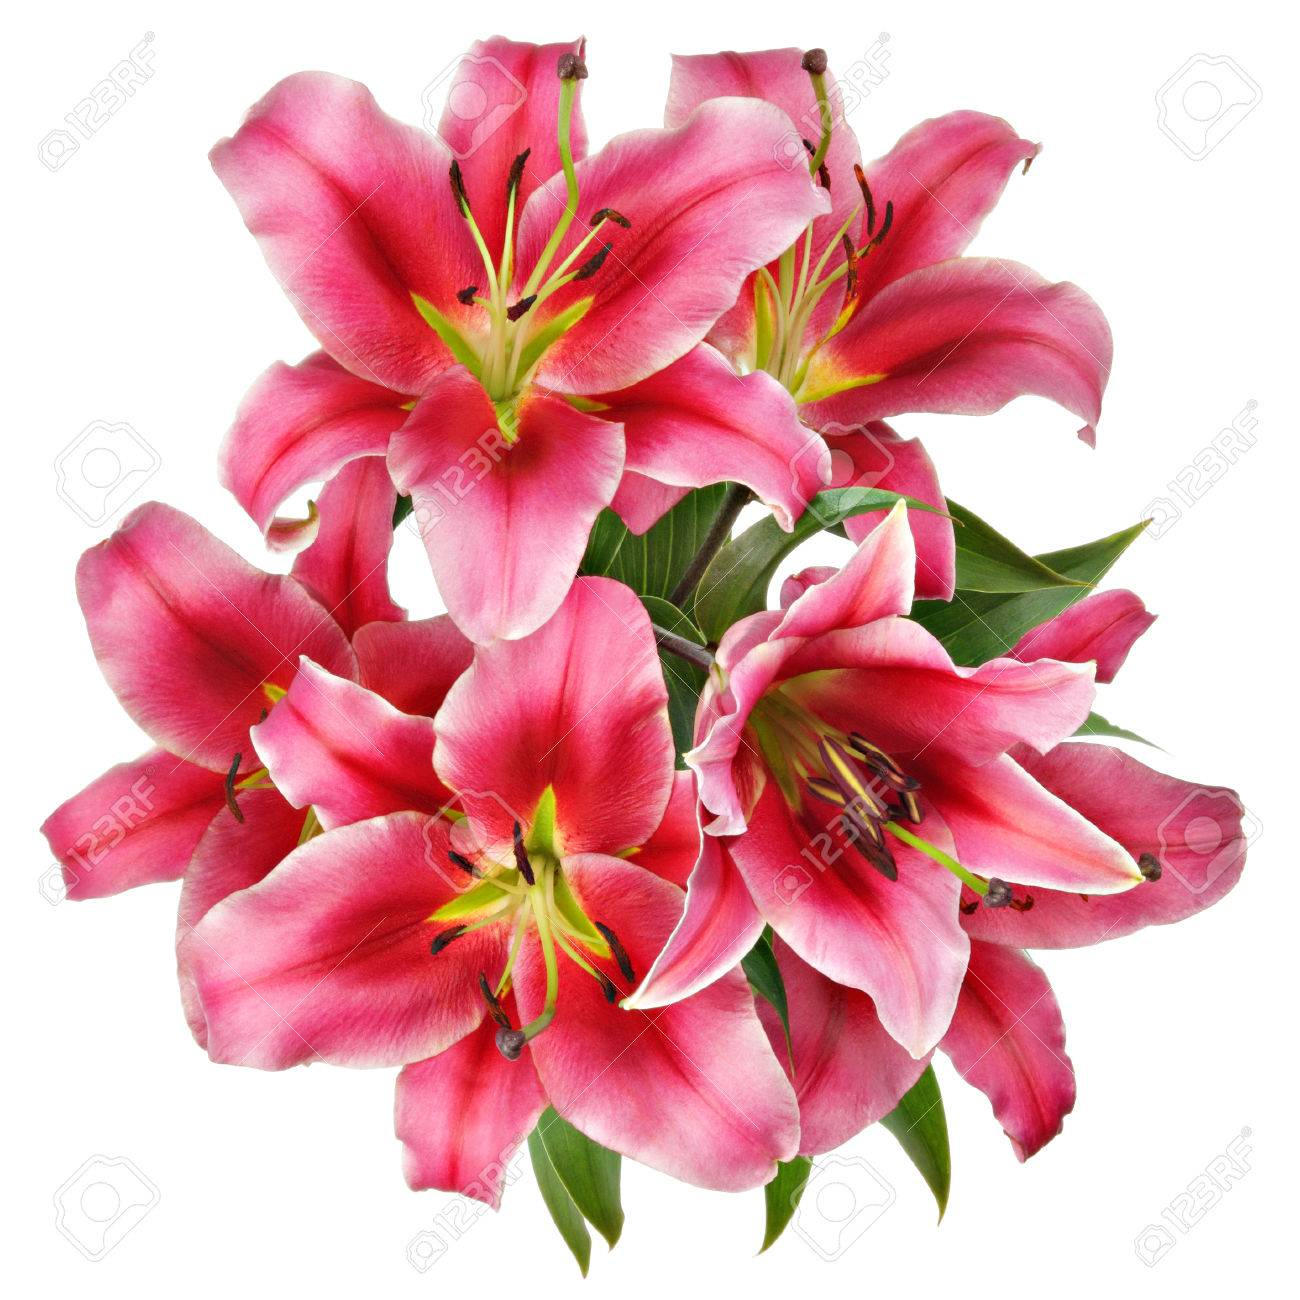 Vintage Flowers Pattern With Pink Lilies Isolated On White Stock